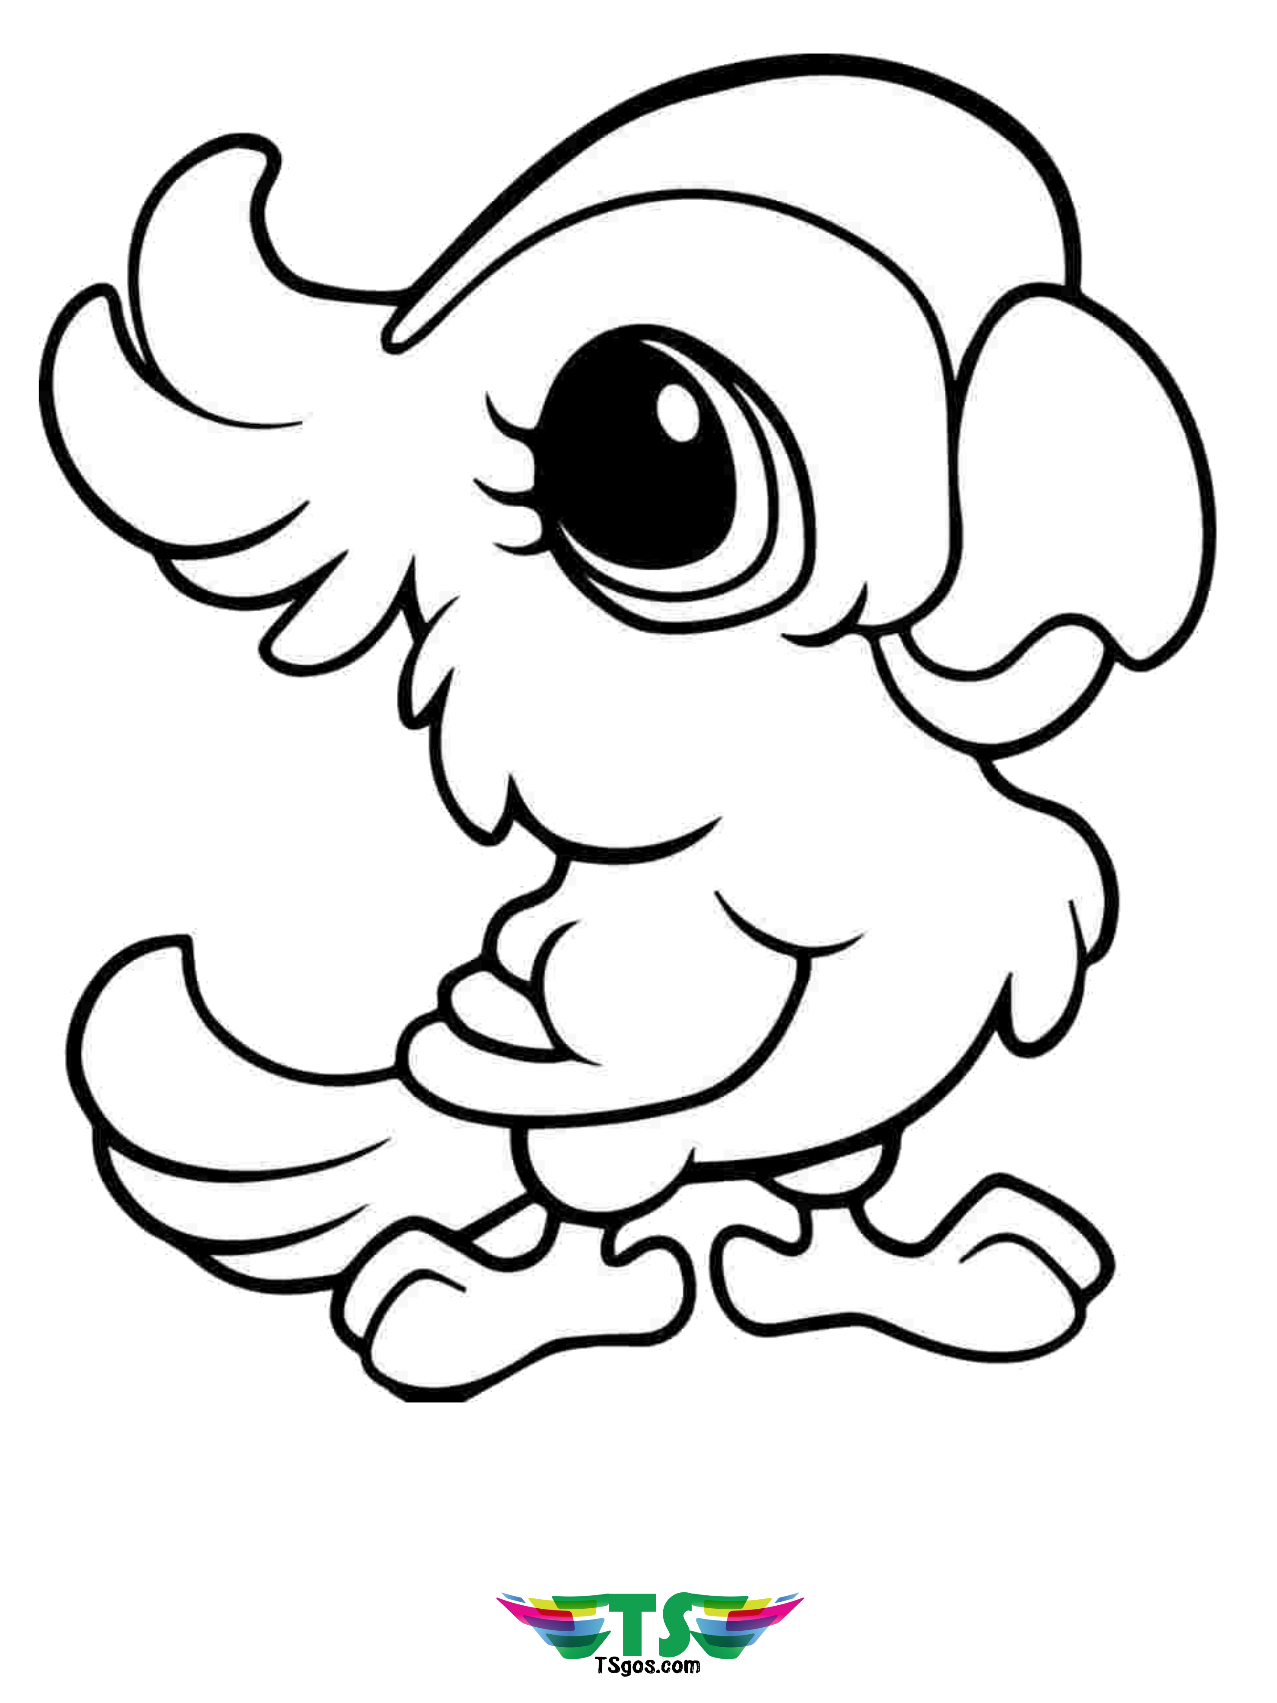 Cute bird coloring page for kids. - TSgos.com